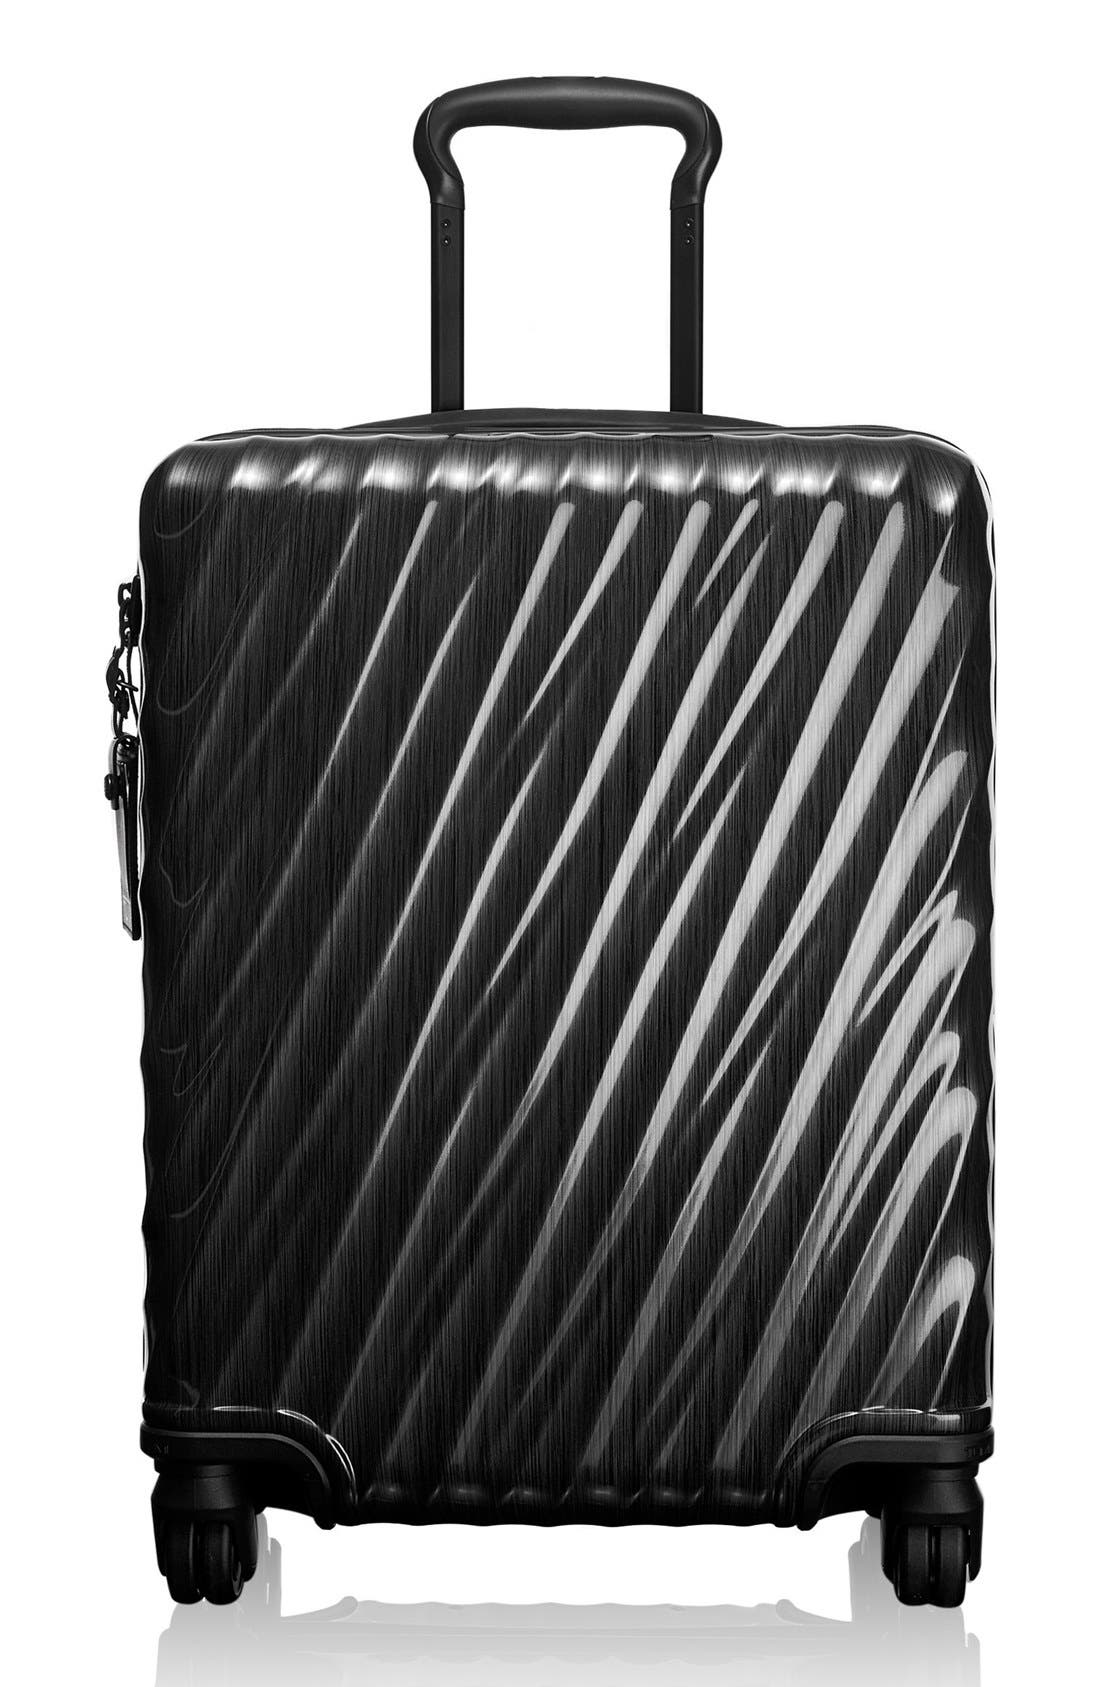 Tumi 19 Degree 22 Inch Continental Wheeled Carry-On